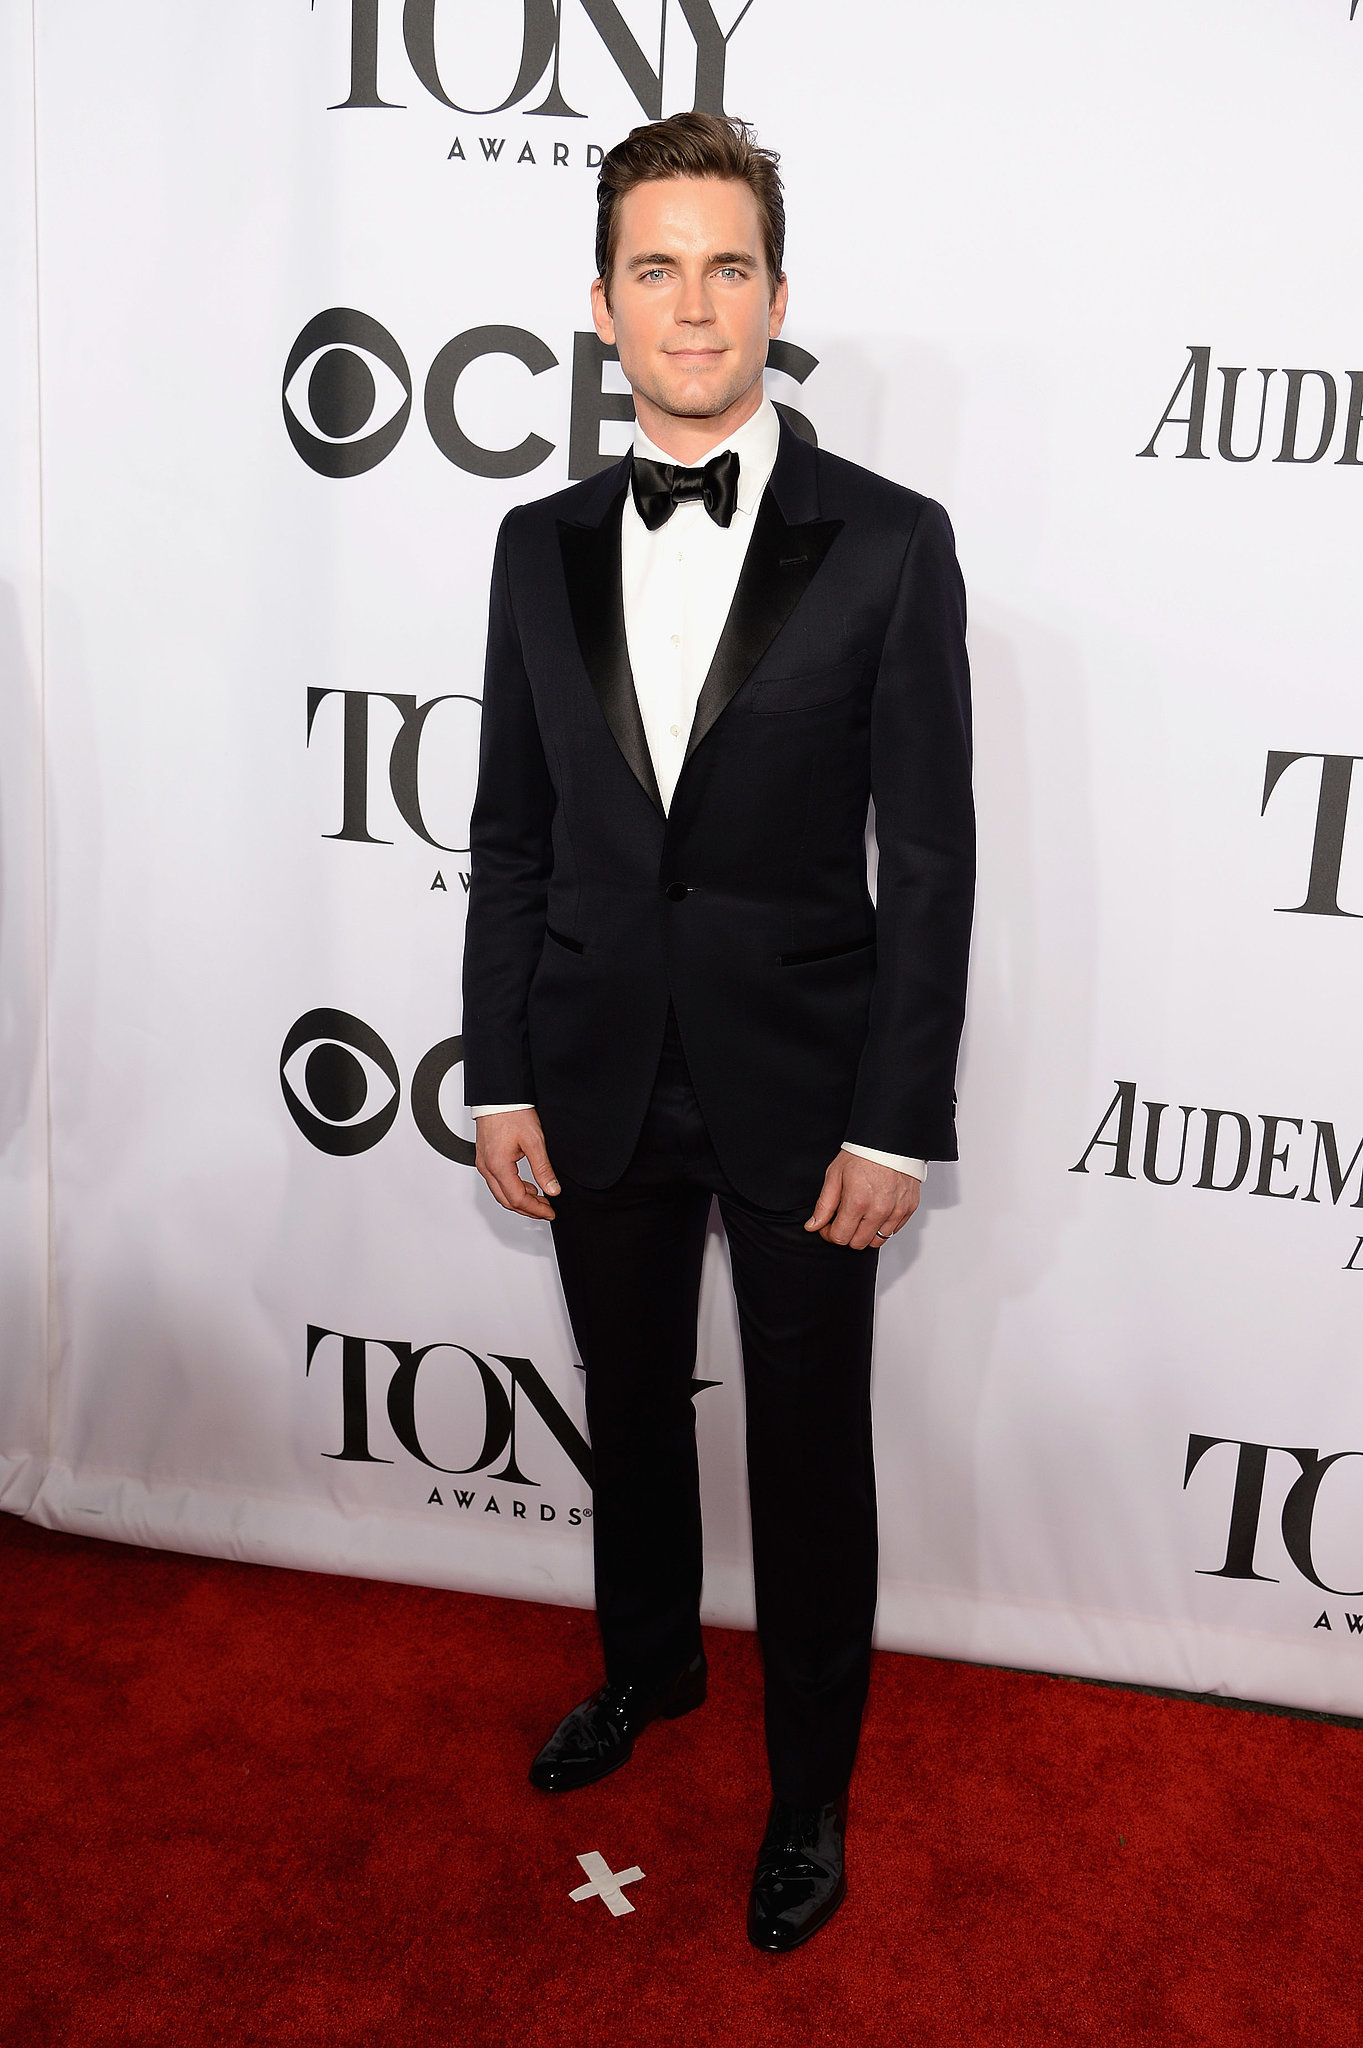 Matt Bomer looked as handsome as ever.